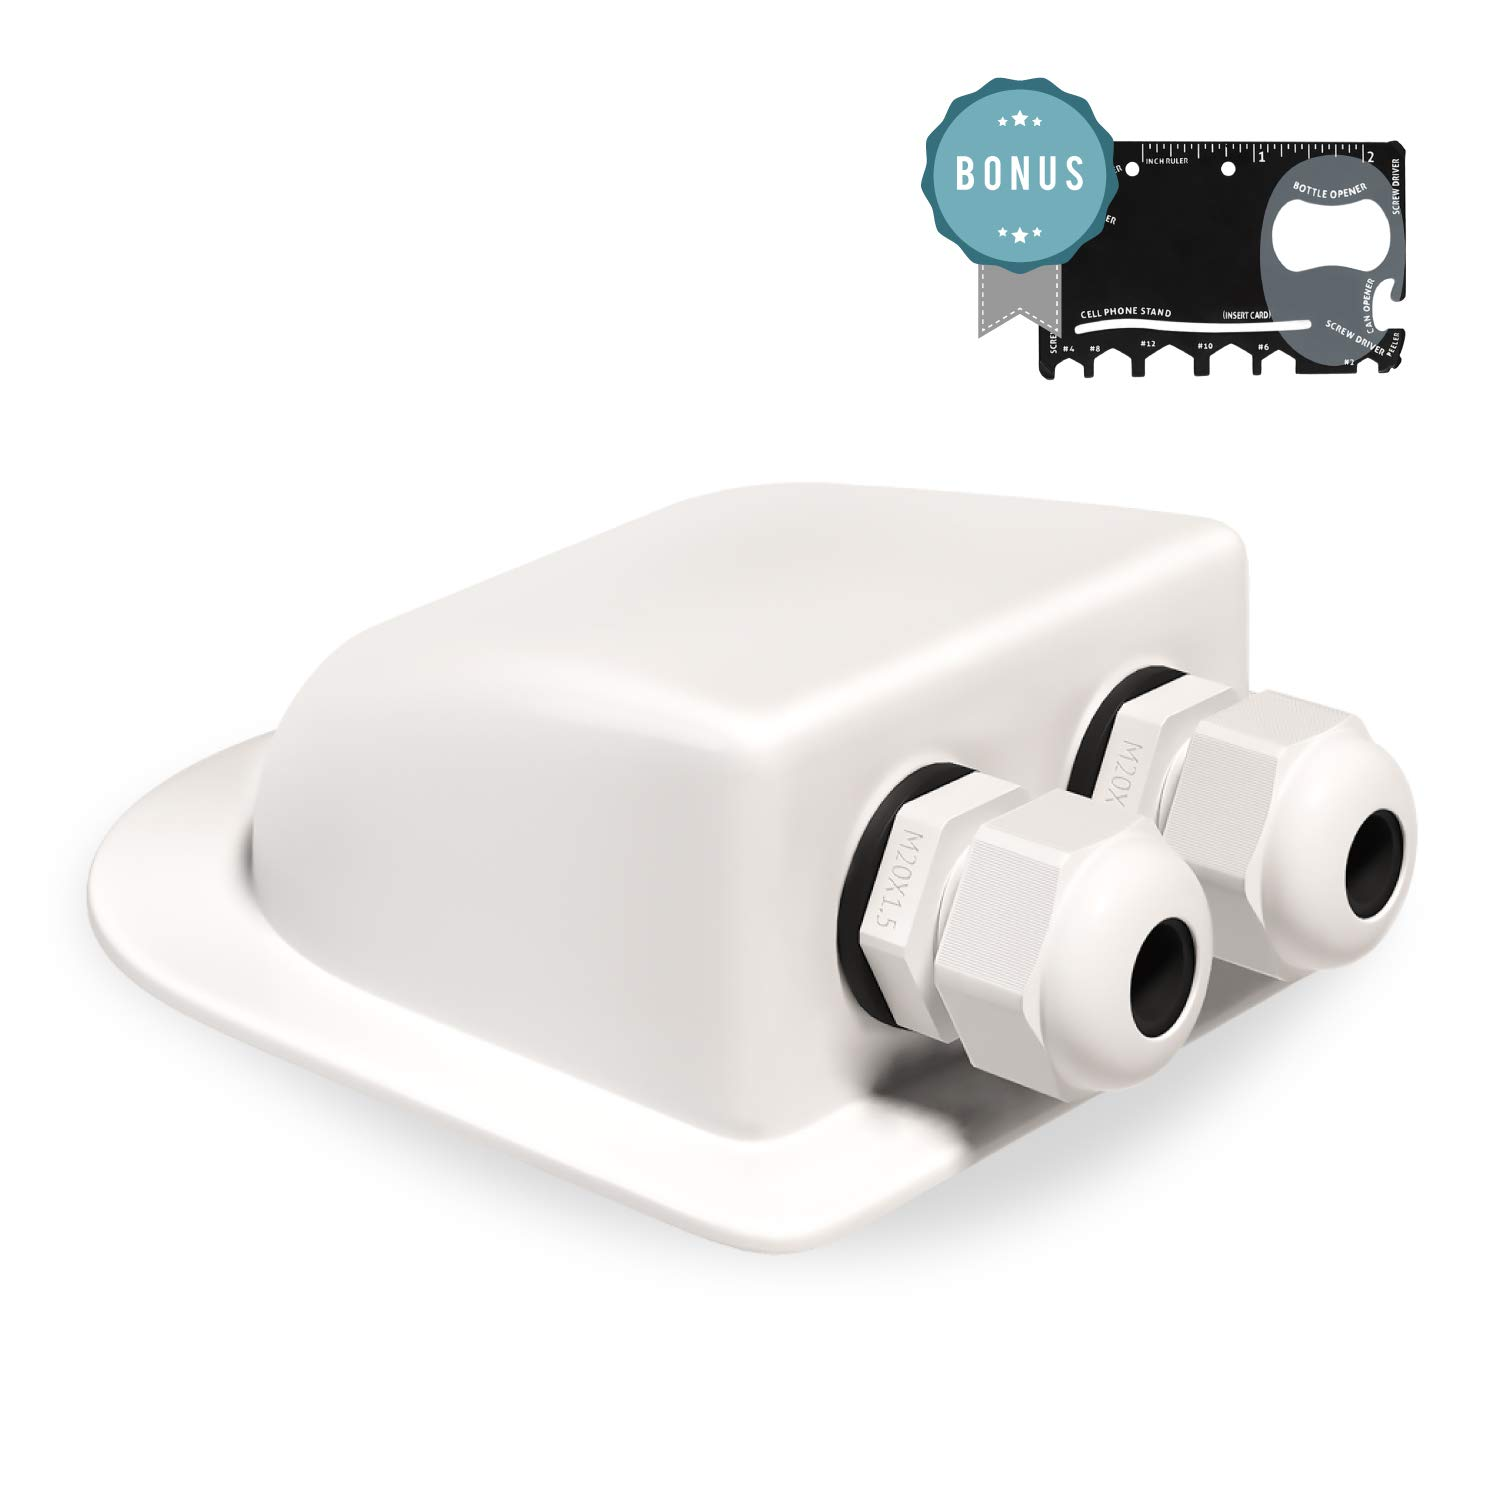 Cable Entry Gland Waterproof - Cable Entry Plate, Fits Cables 3mm to 12mm for Solar Panels, Motorhomes, Caravans, Boats and RV's by Everland